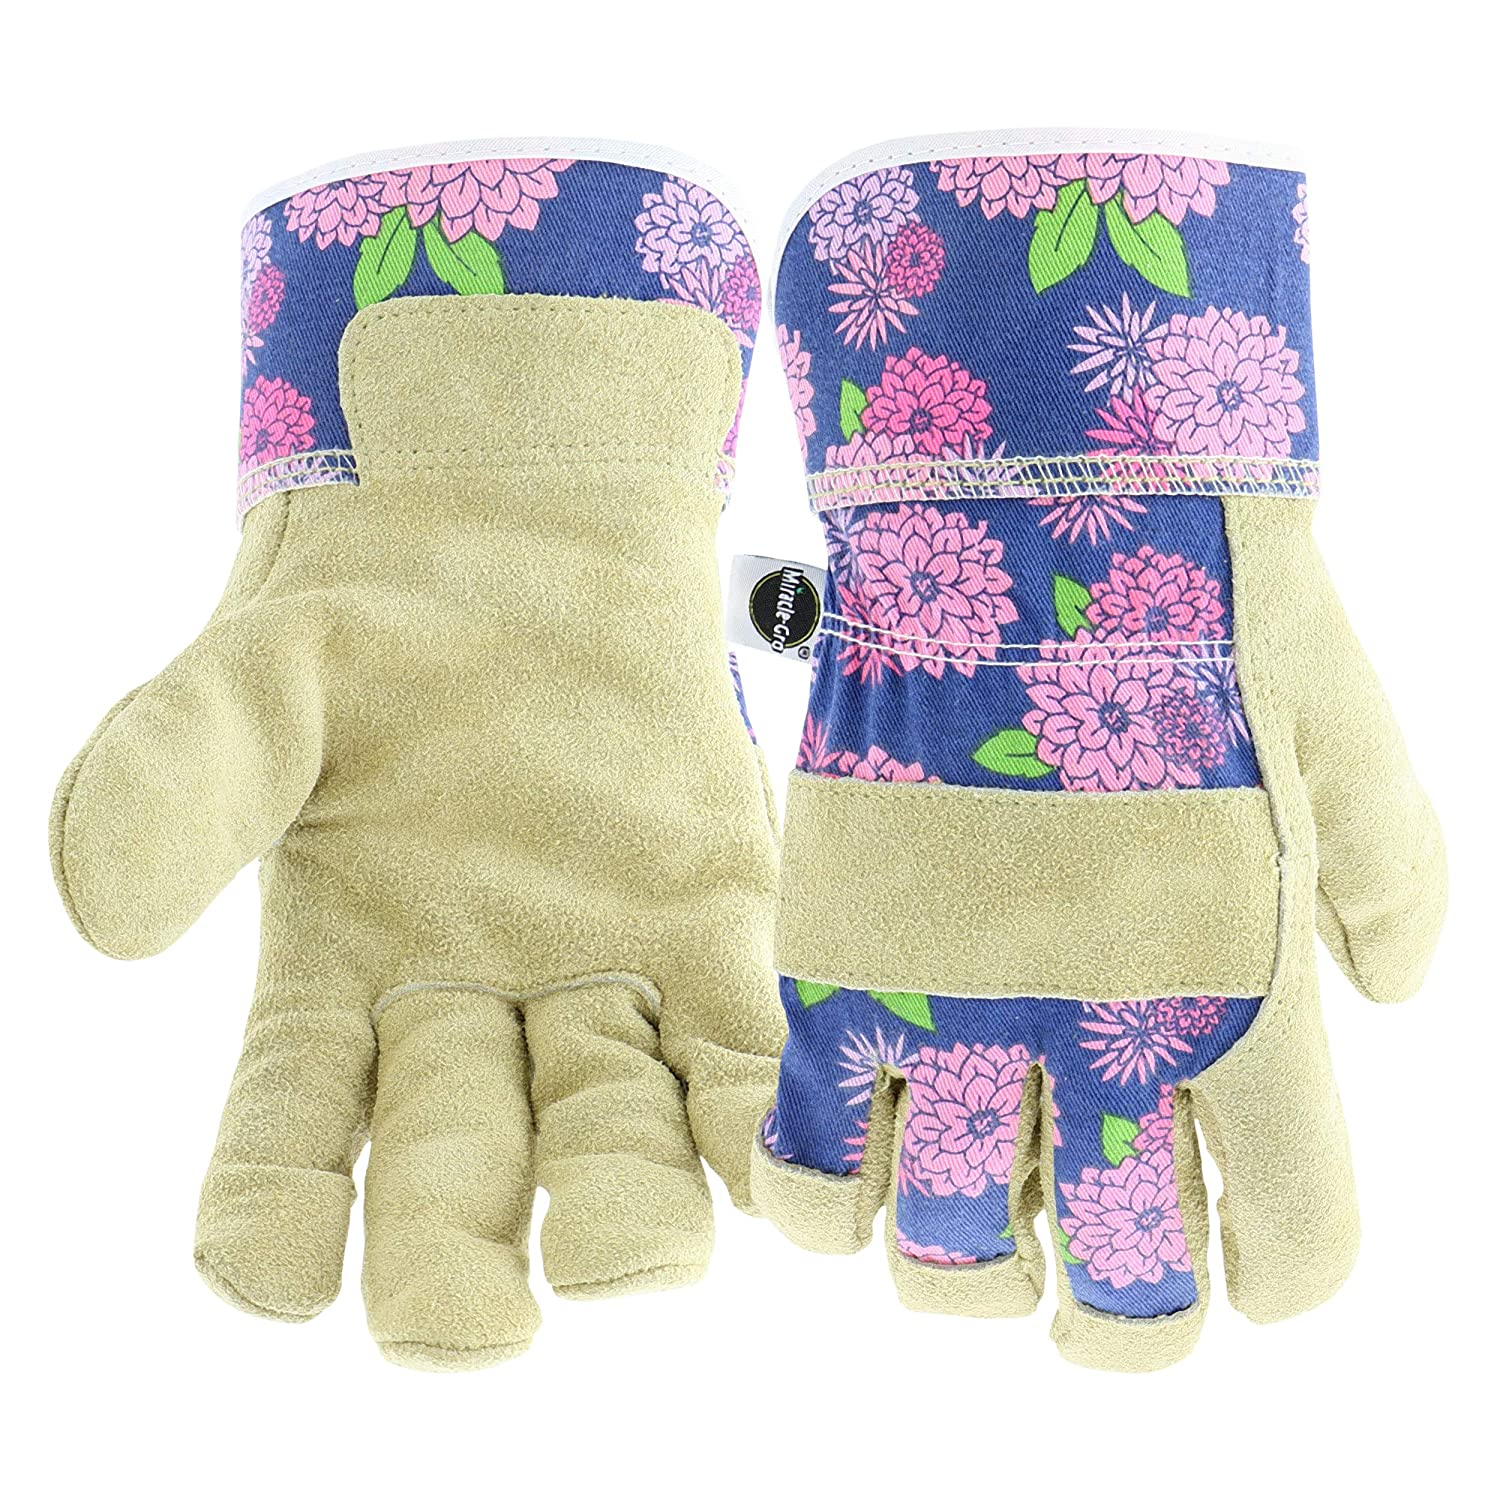 West Chester Miracle-Gro MG23012/WML Split Cowhide Garden Gloves – Floral, Medium-Large, Canvas Back Leather Palm Gloves for Women